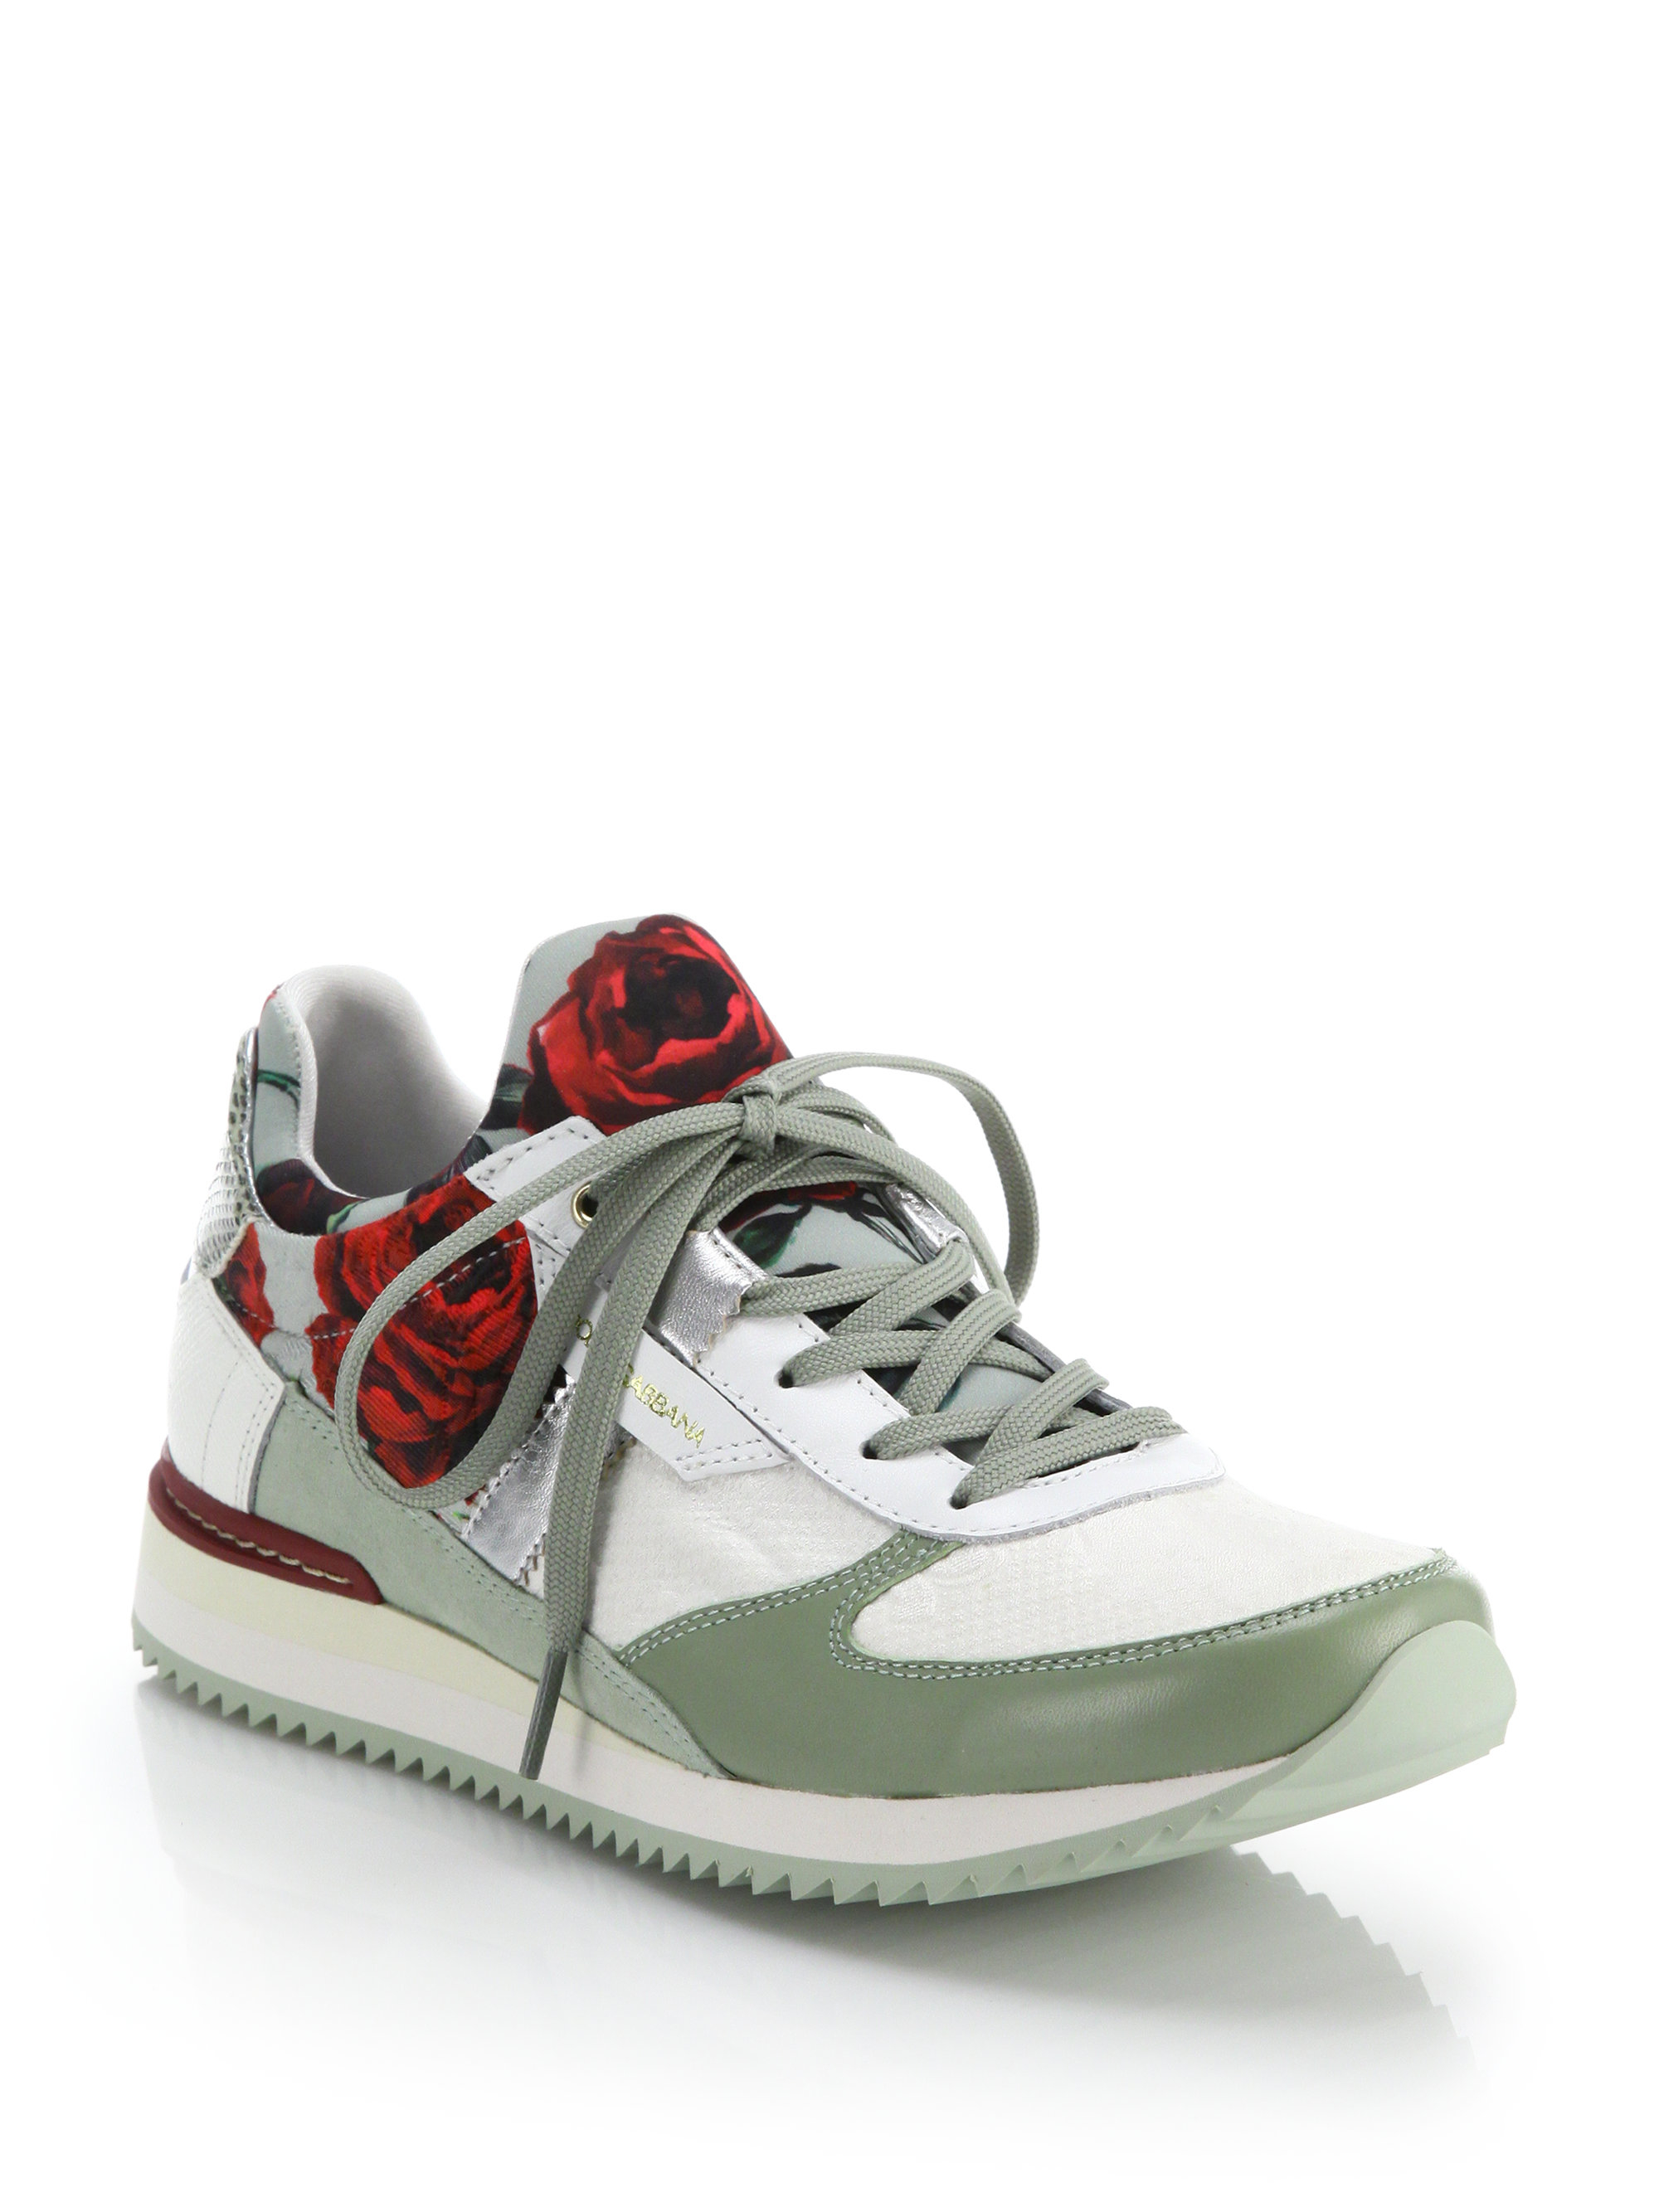 Cheap Price Womens Dolce  Gabbana Rose Print Sneakers New Arrival